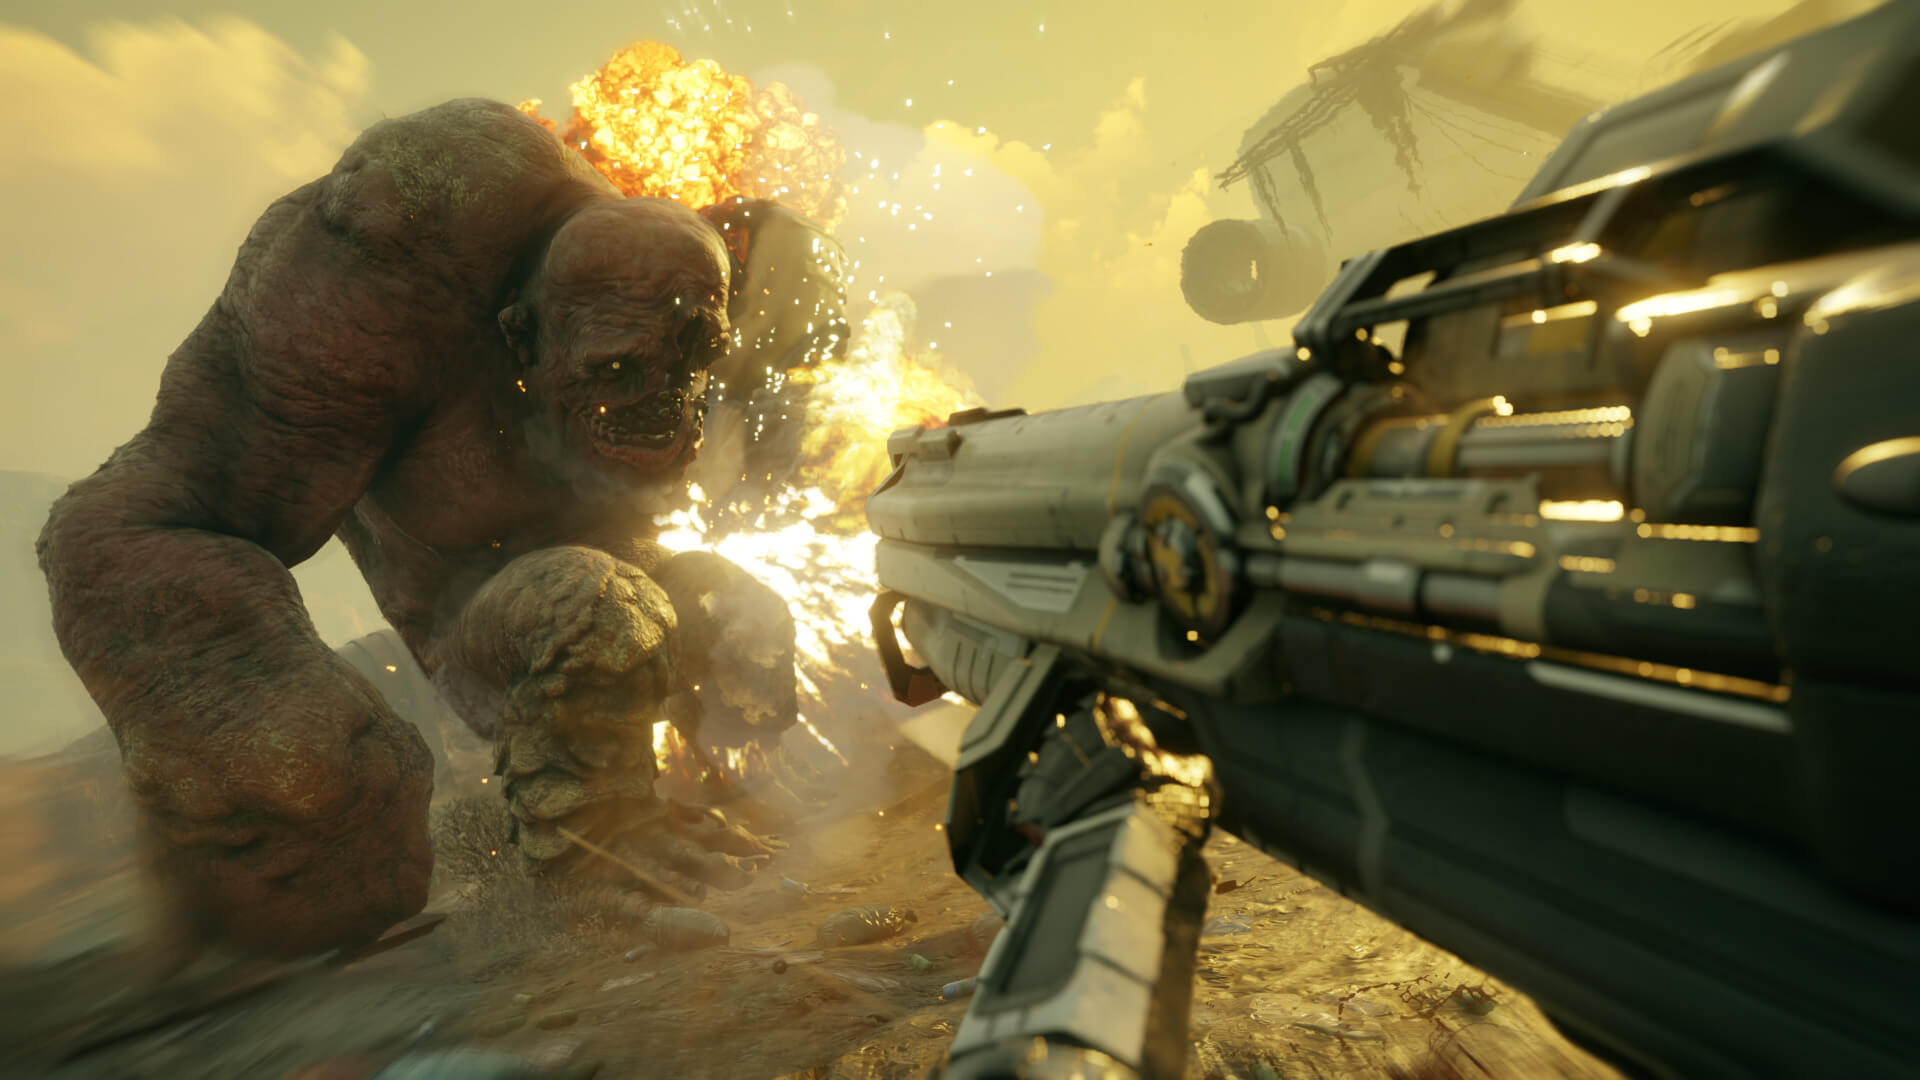 RAGE 2's Bethesda Store version does not use the Denuvo anti-tamper tech, has been cracked